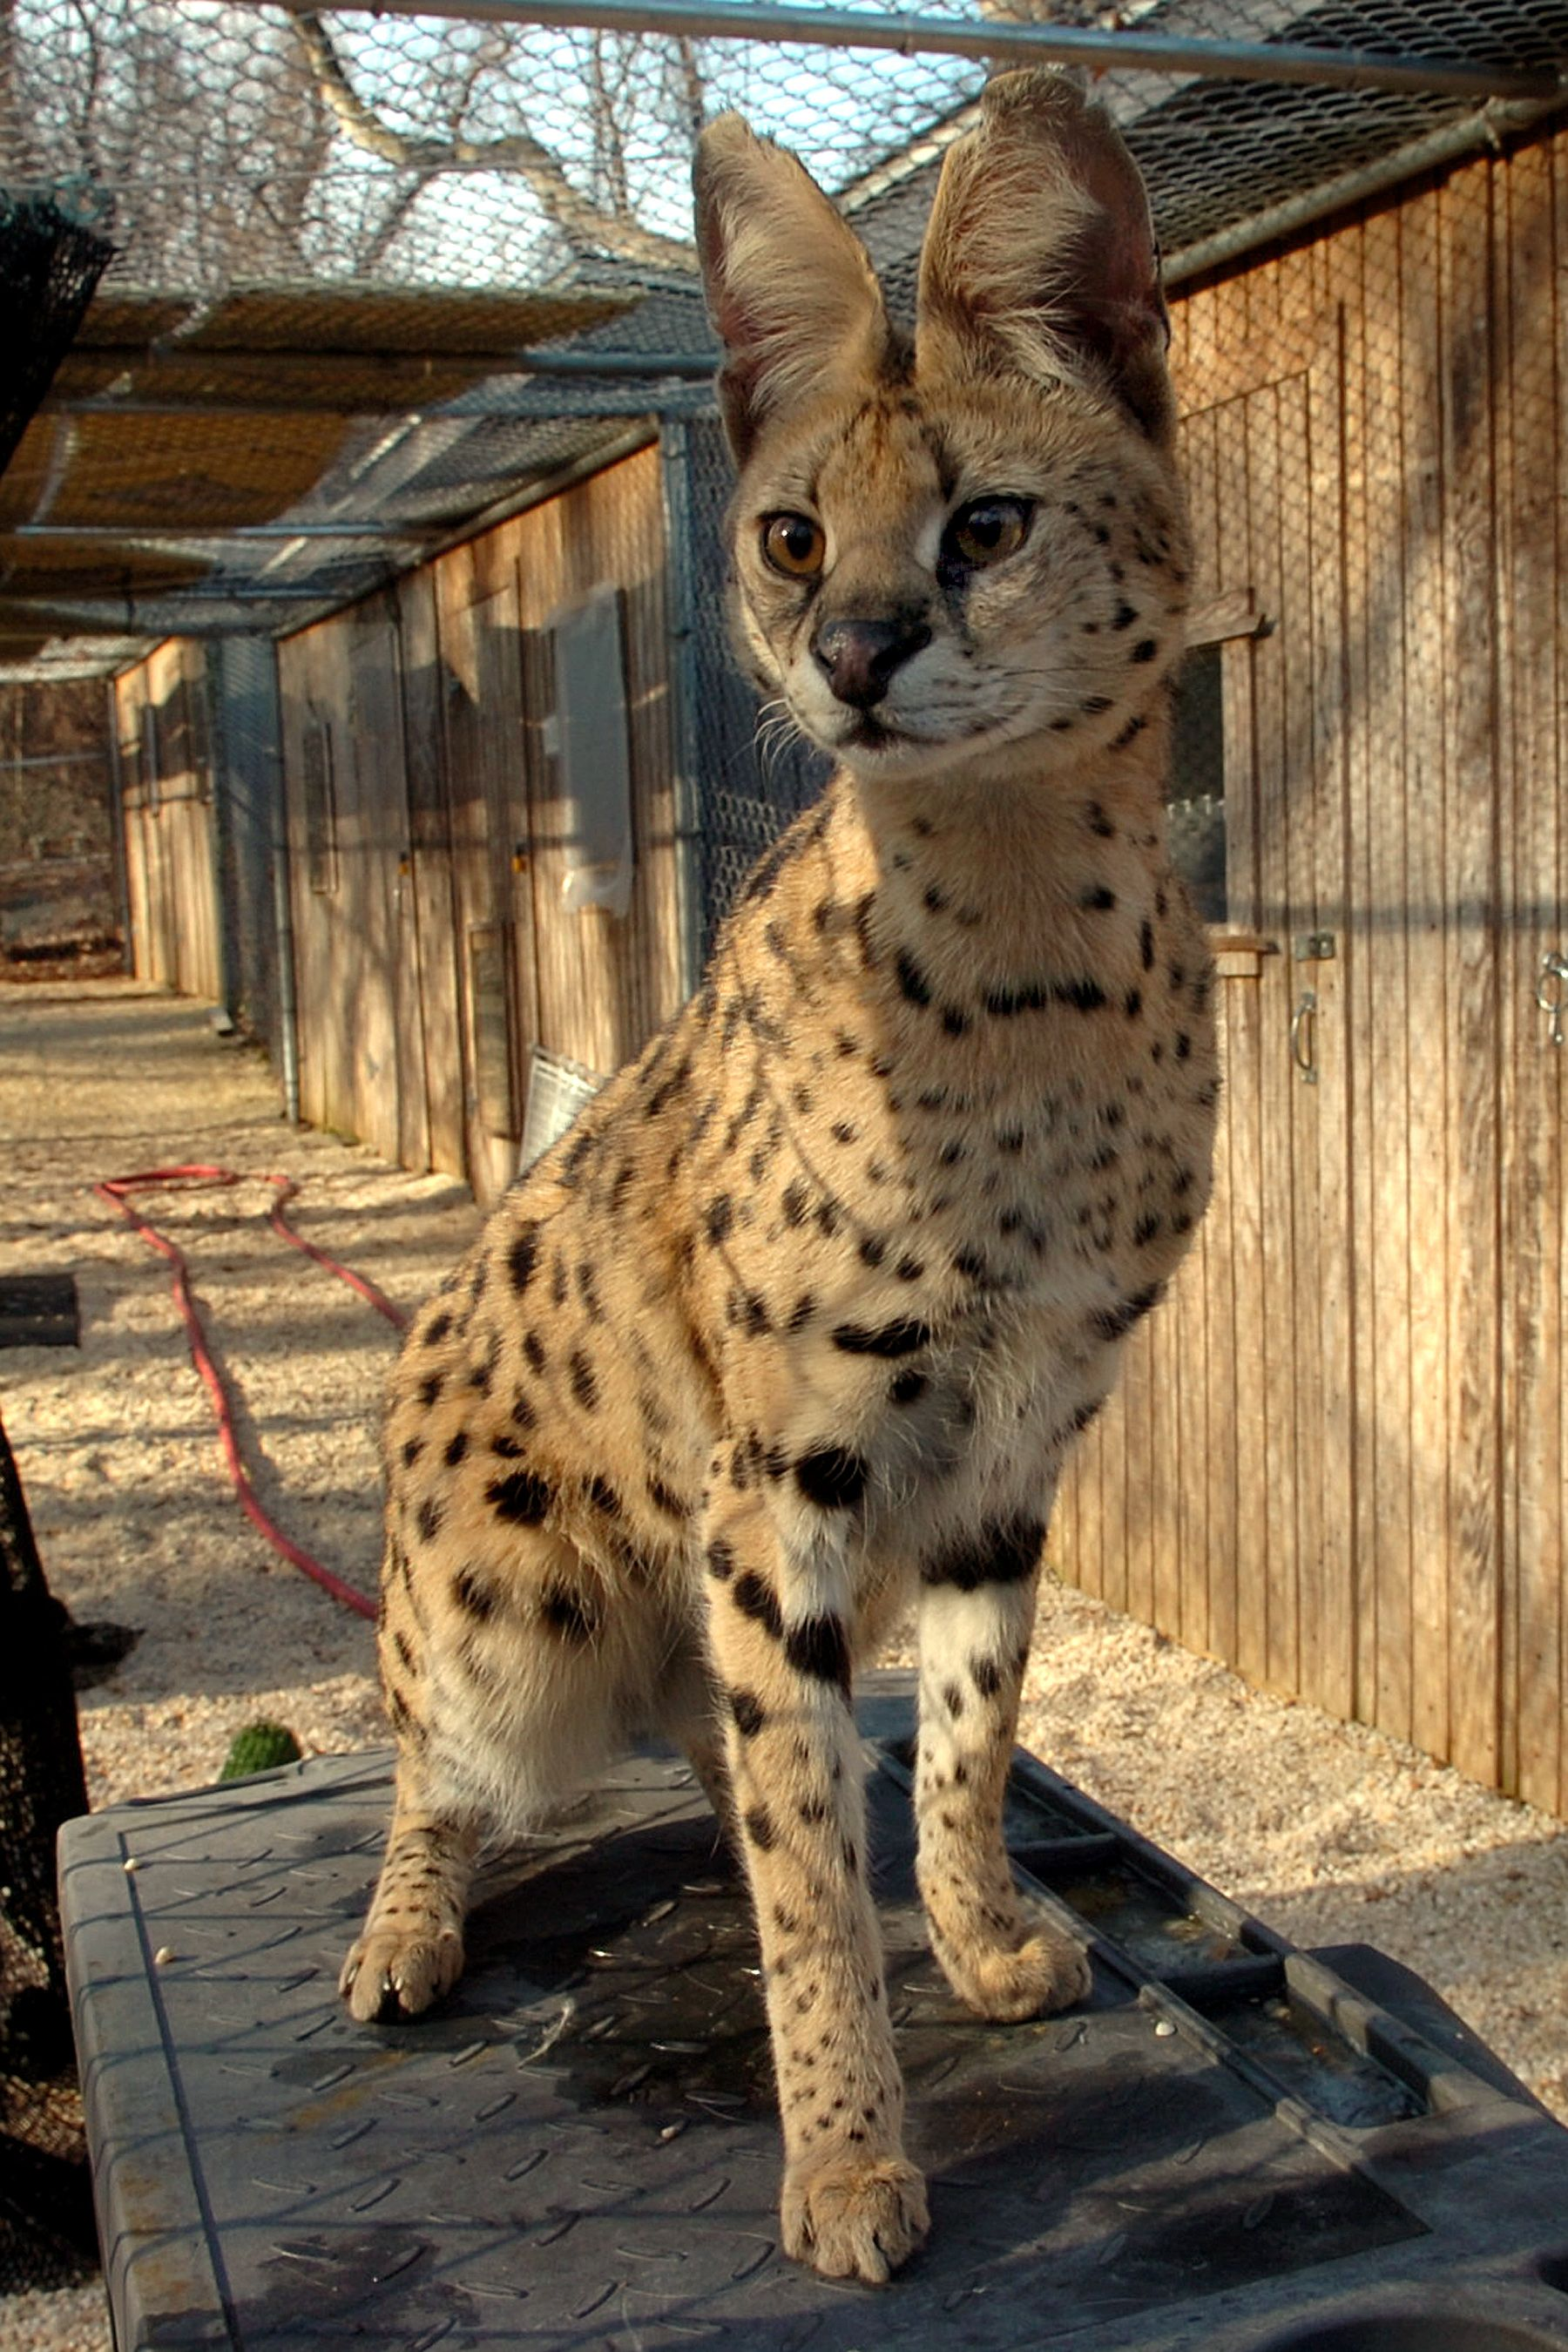 Jamilla the Serval from the MD Zoo in Baltimore